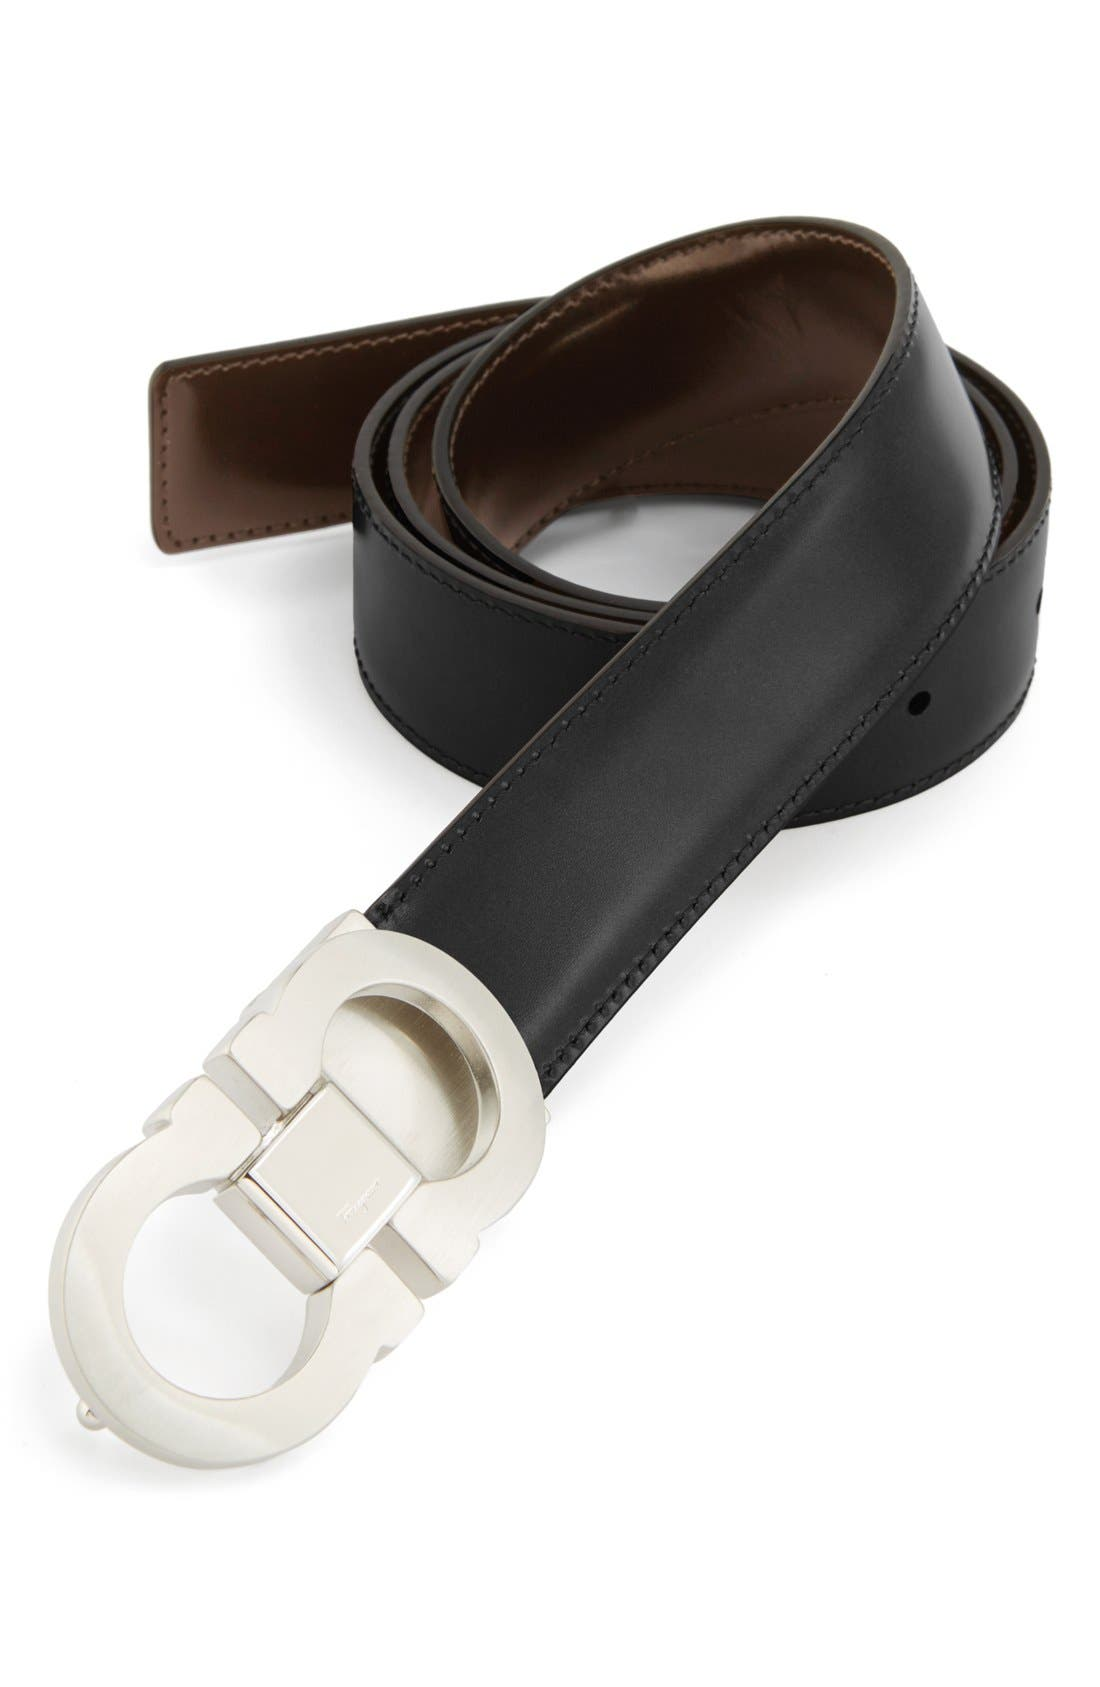 Main Image - Salvatore Ferragamo Double Gancio Reversible Leather Belt